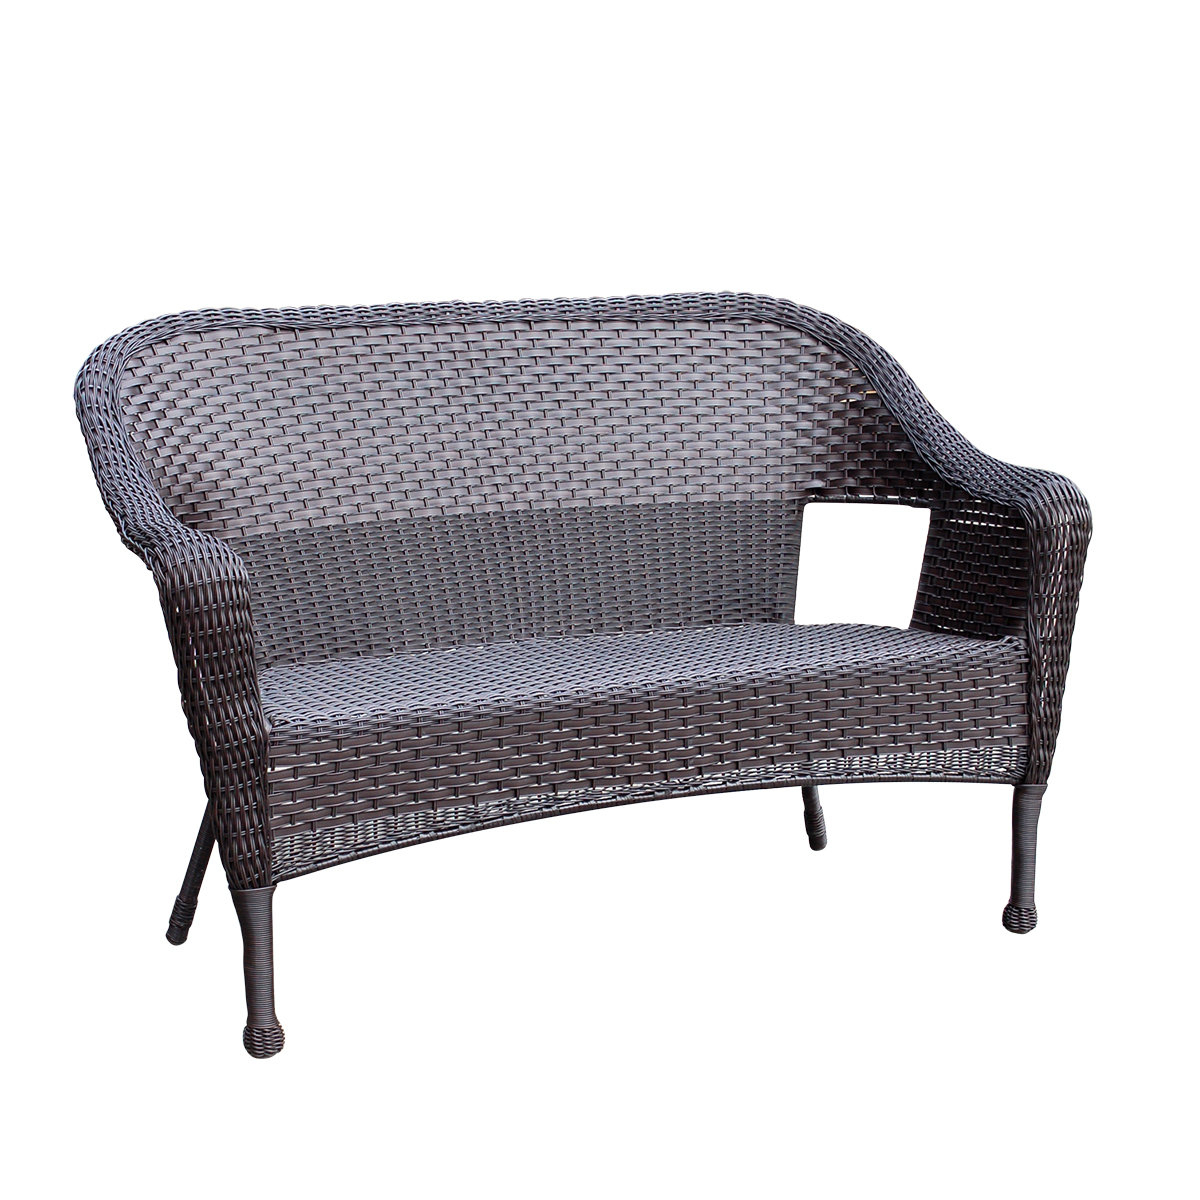 Kentwood Resin Wicker Loveseats With Regard To Famous Alcott Hill Kentwood Resin Wicker Loveseat & Reviews (Gallery 1 of 20)